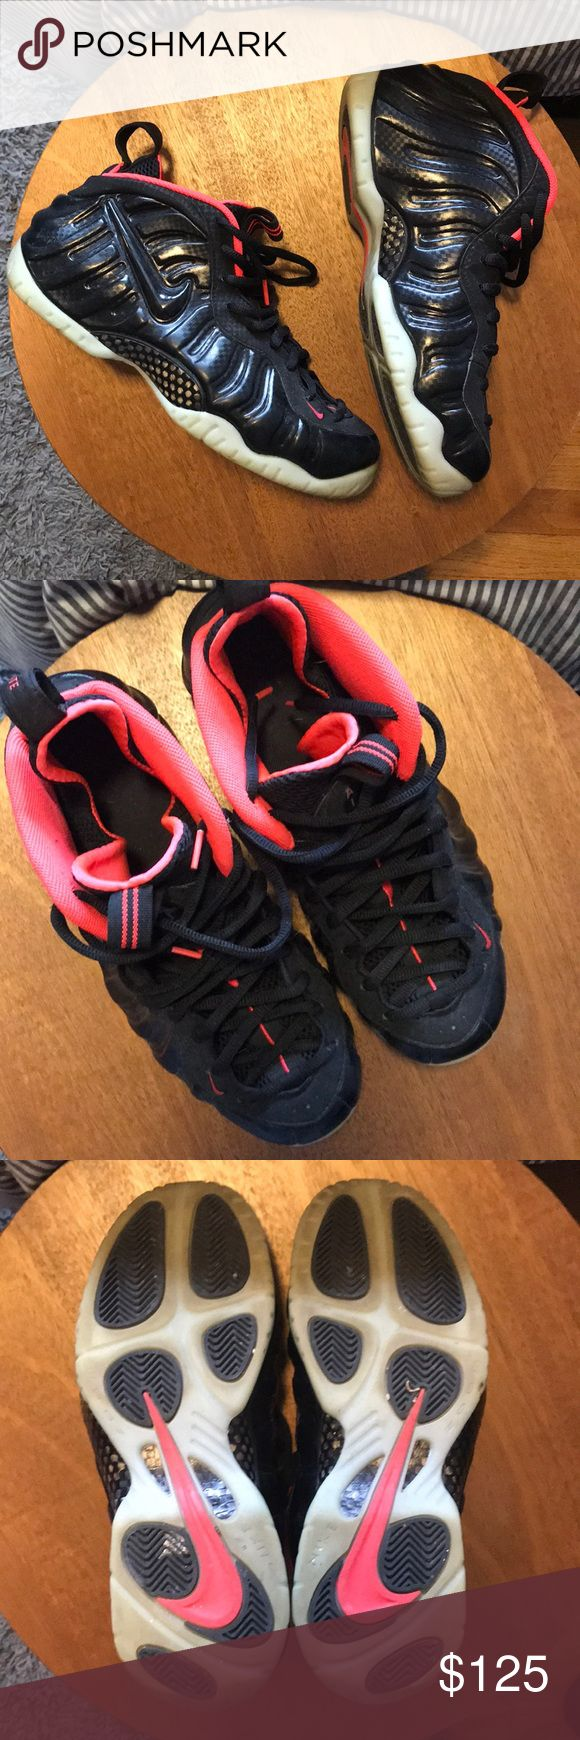 NIKE Air Yeezy Foamposite Used condition. No flaws. Probably worn a handful of times if that. Size 10. Nike Shoes Sneakers